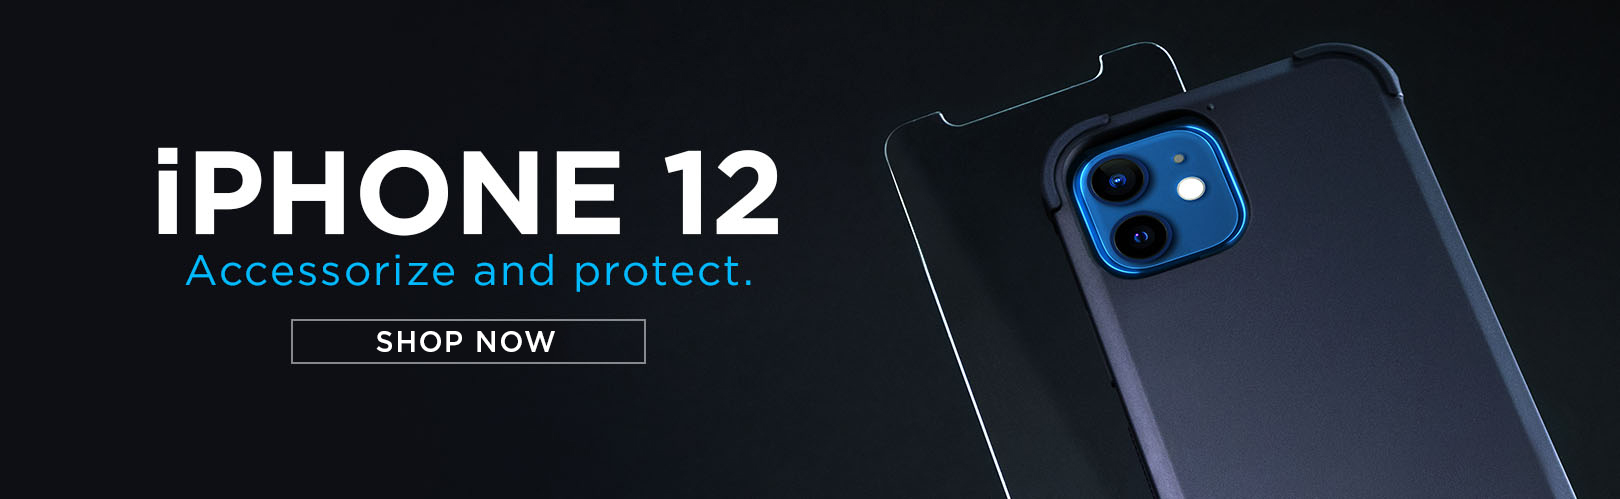 iPhone 12 Accessorize and Protector Banner